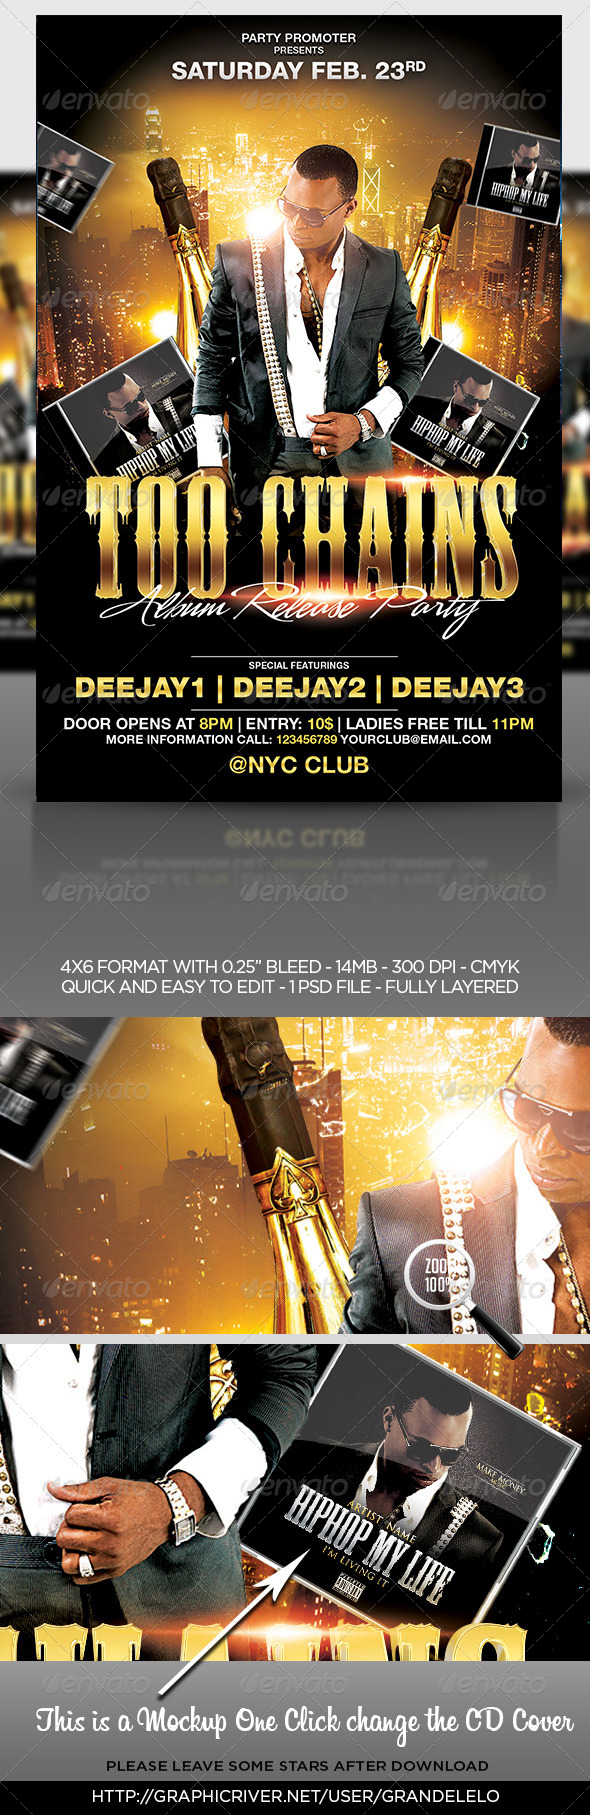 GraphicRiver Album or Mixtape Release Party Flyer Template 8204464